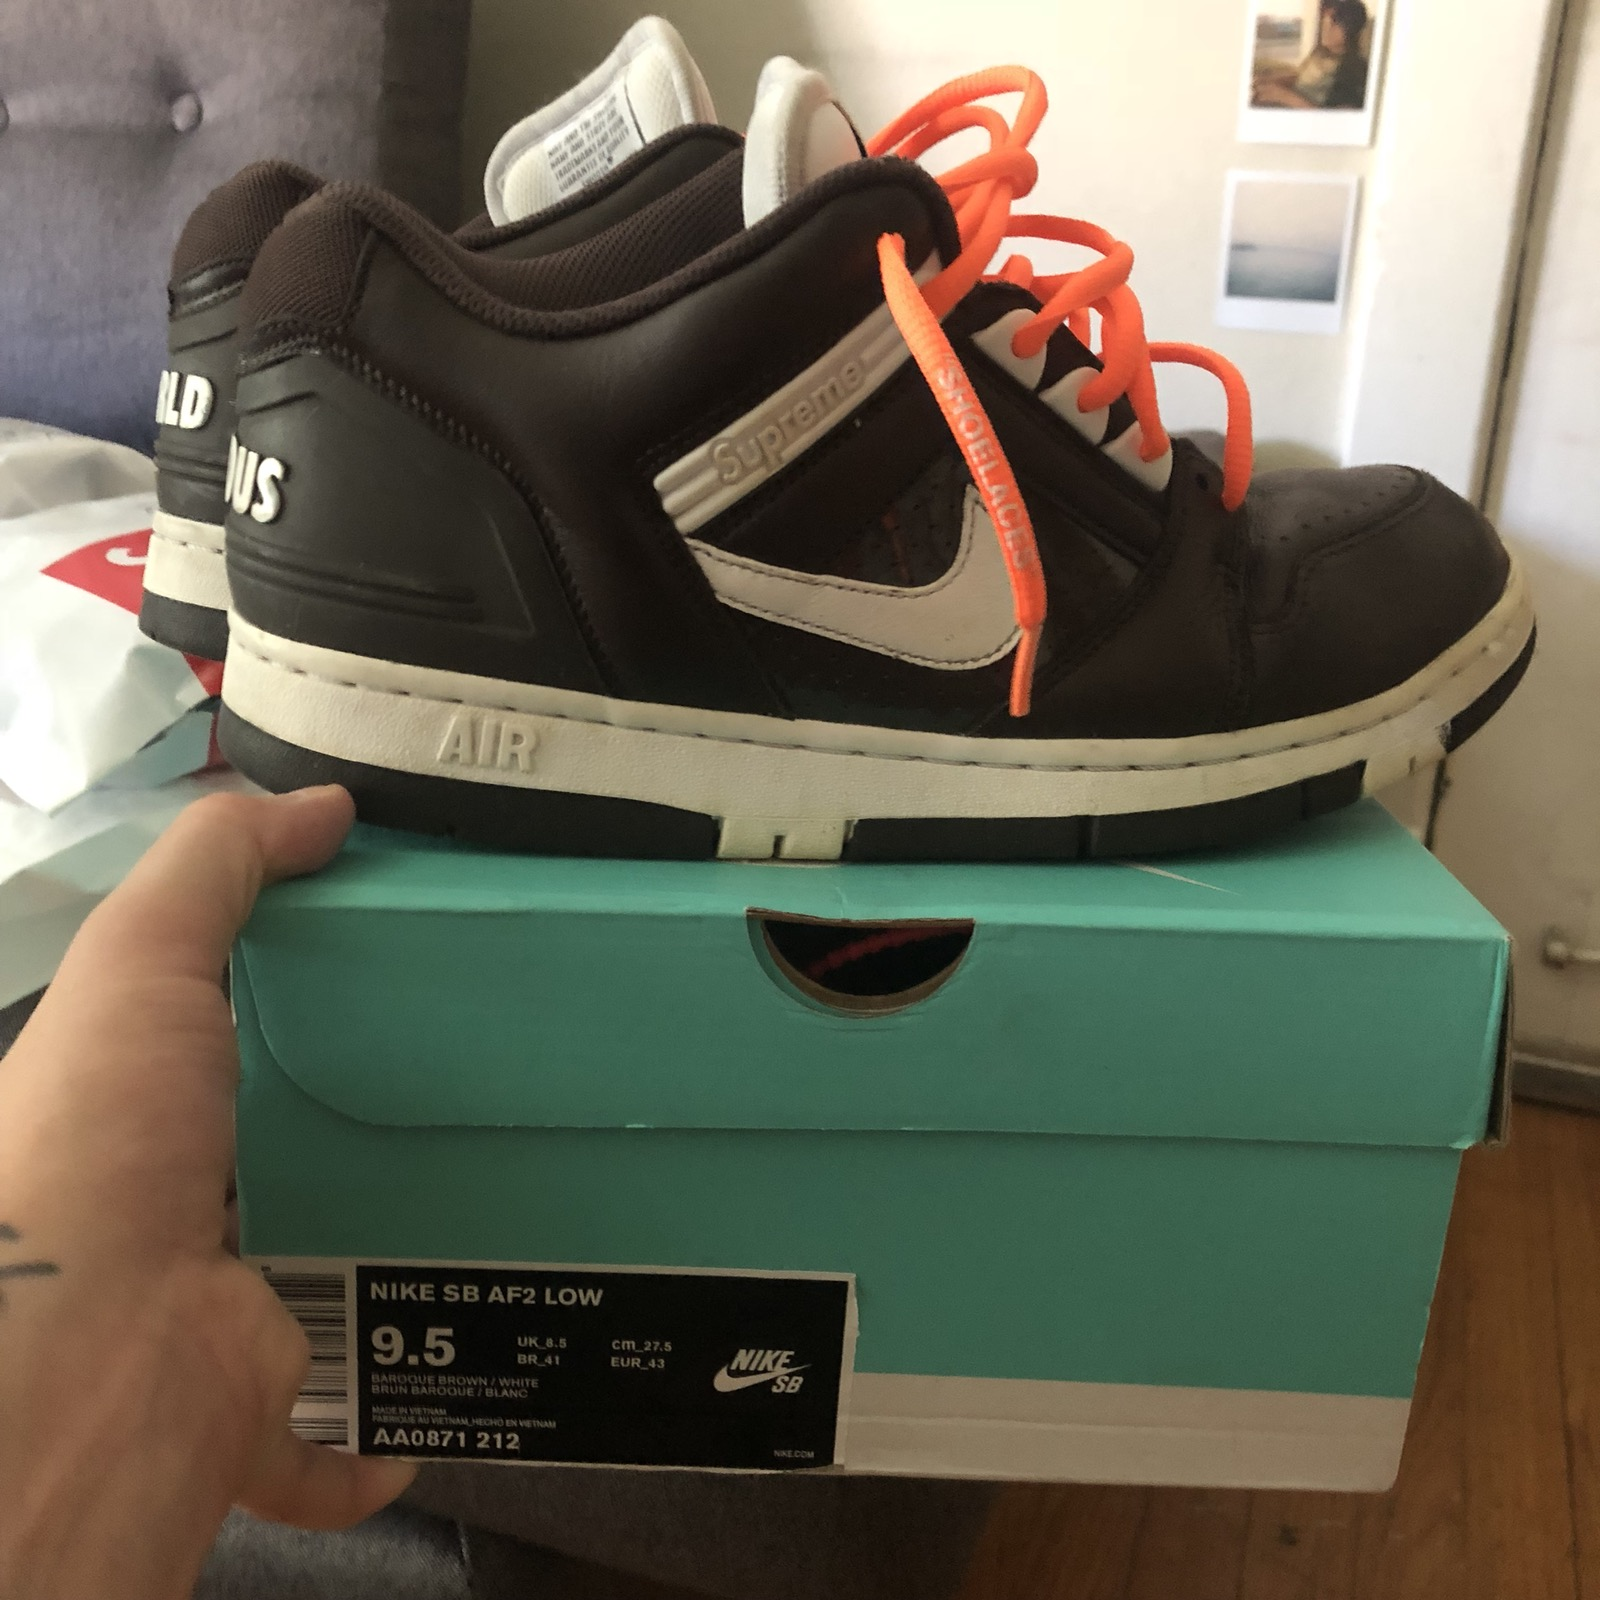 buy online 8f0f0 473b4 Supreme Supreme Nike SB Air Force 2 Brown 9.5 Size 9.5 - Low-Top Sneakers  for Sale - Grailed